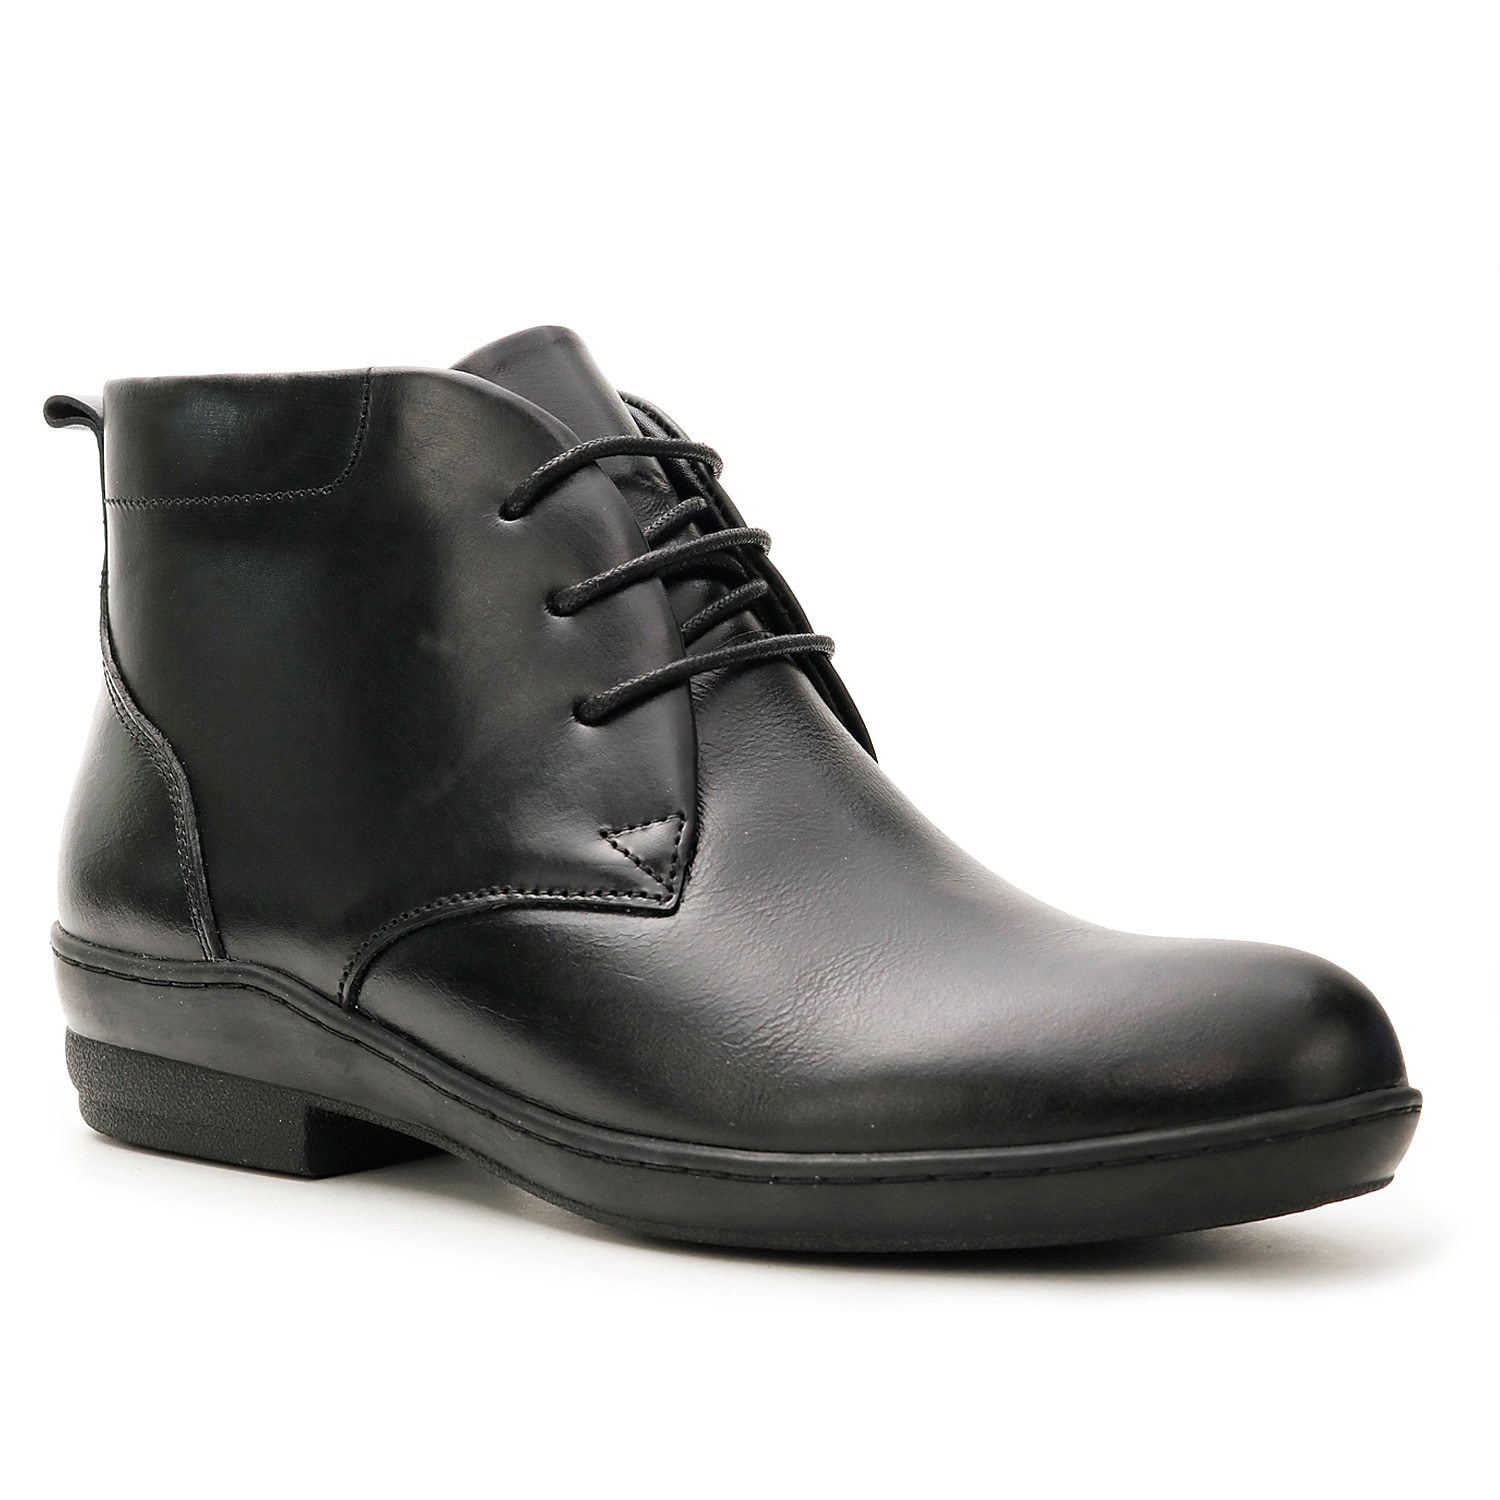 Formal design gets a chic update in the Truth bootie from David Tate. This lace-up leather bootie features side zipper, soft lining, removable insole with gel pack and flexible outsole for a perfect blend of style and comfort.Click here for Boot Measuring Guide.